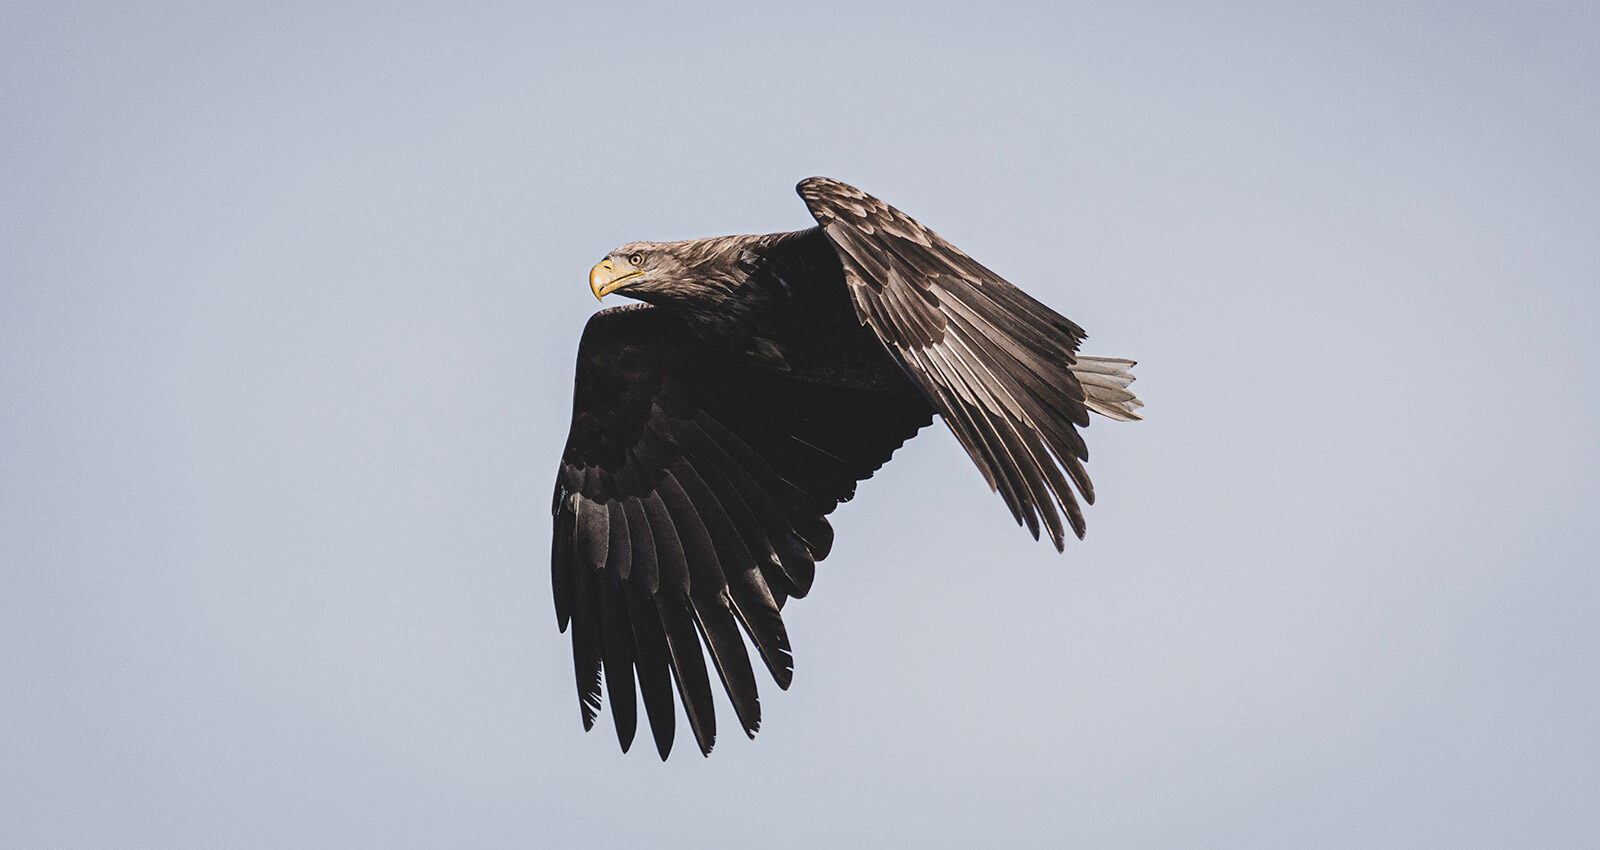 In Search of the Golden Eagle